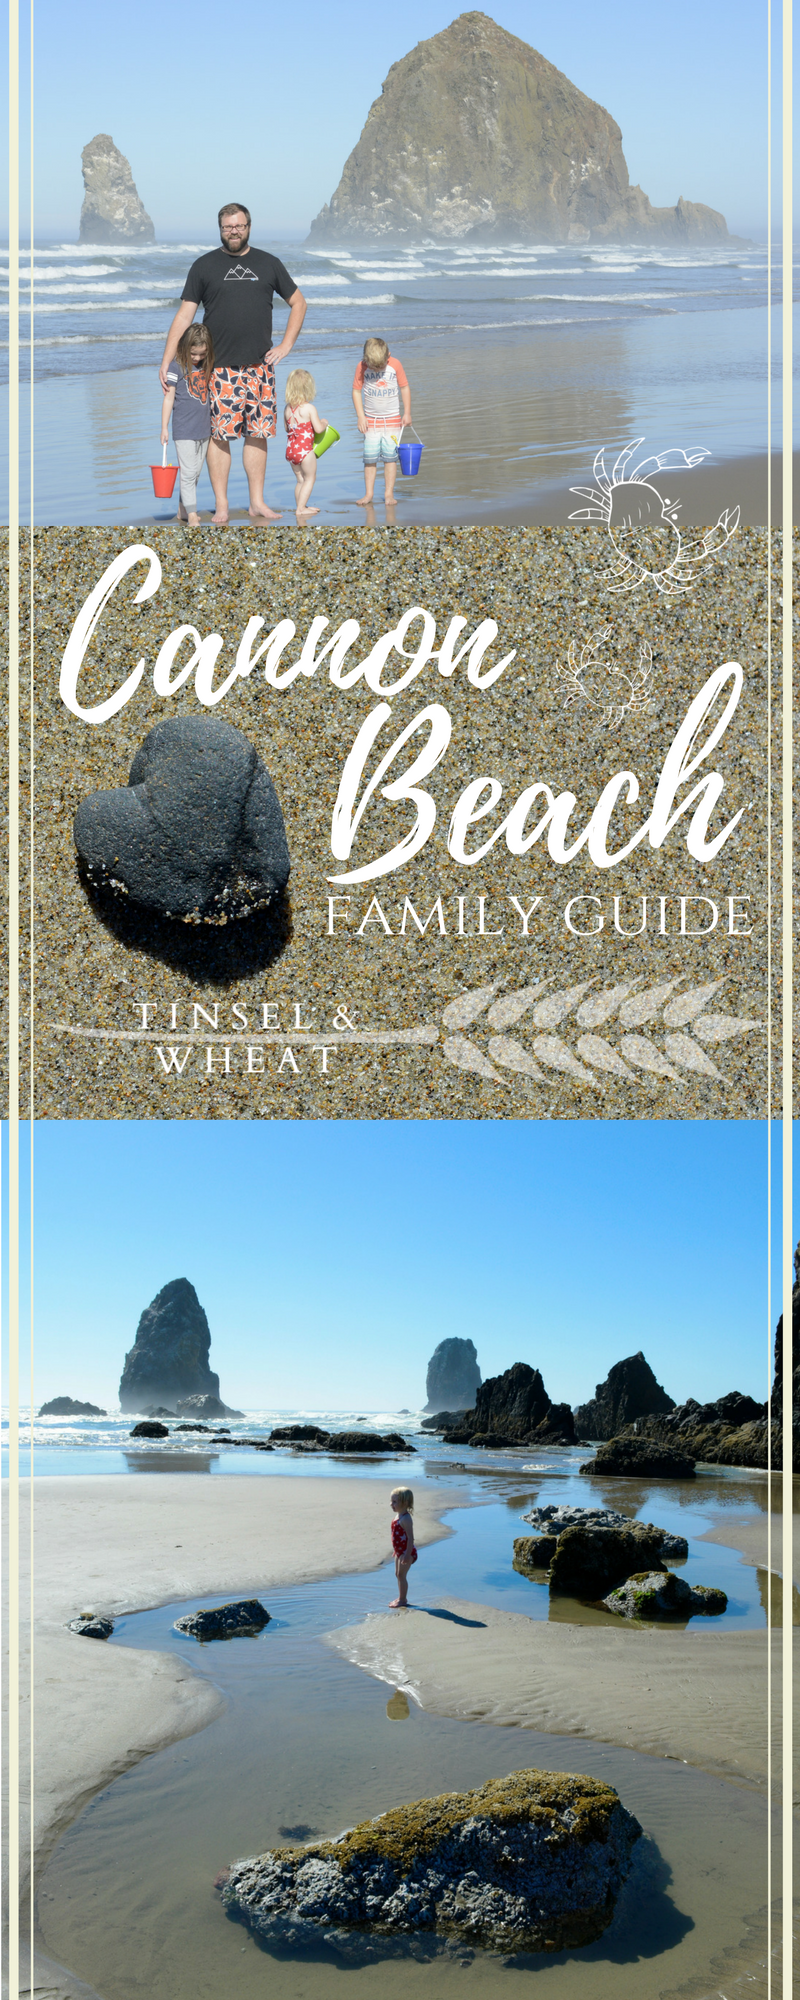 Cannon Beach Family Guide